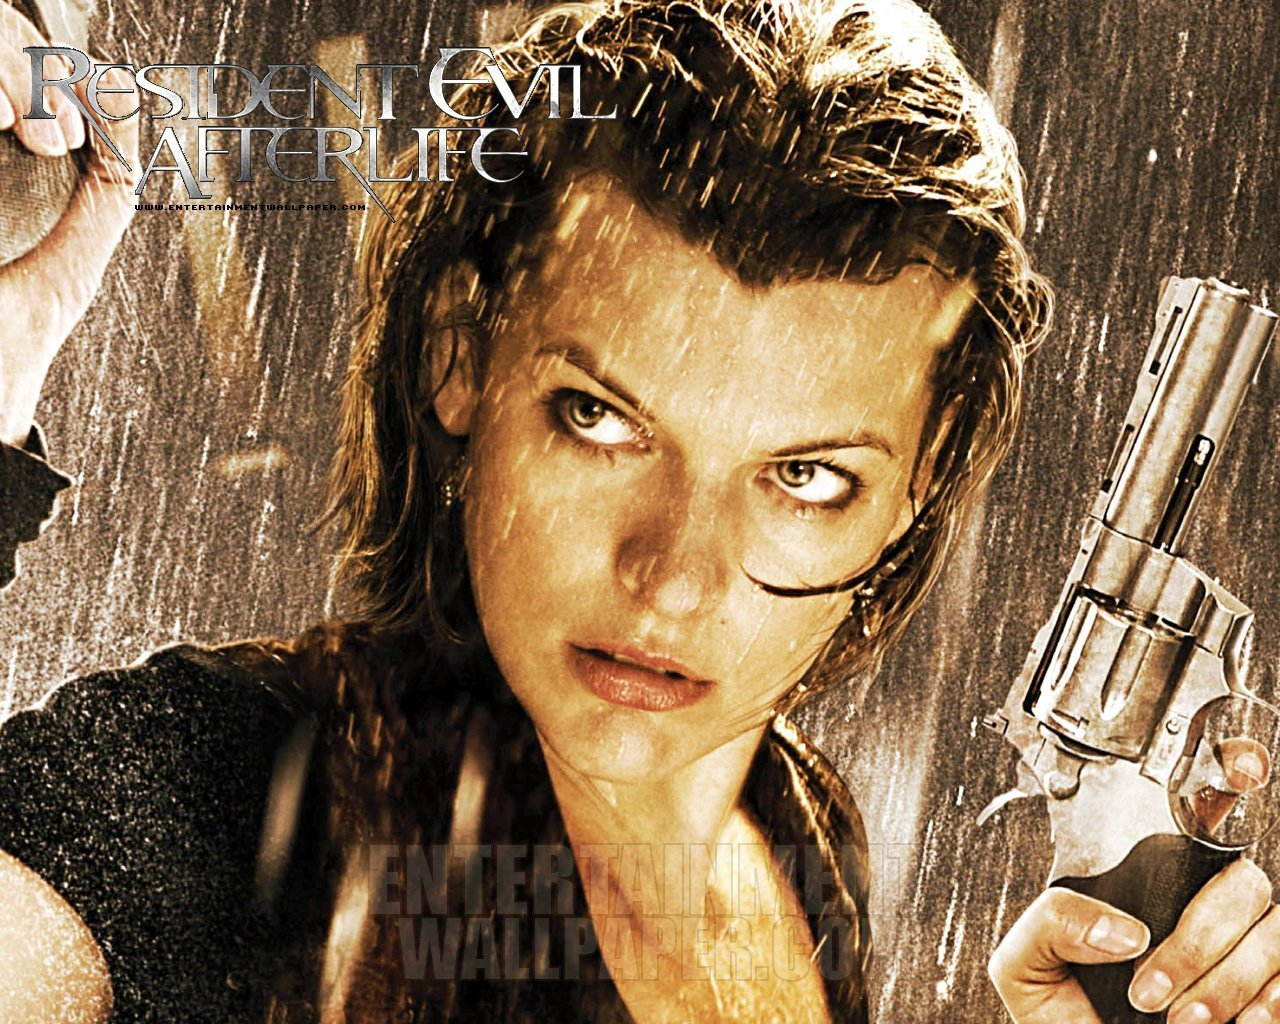 Resident evil afterlife Ringtones and Wallpapers Free by